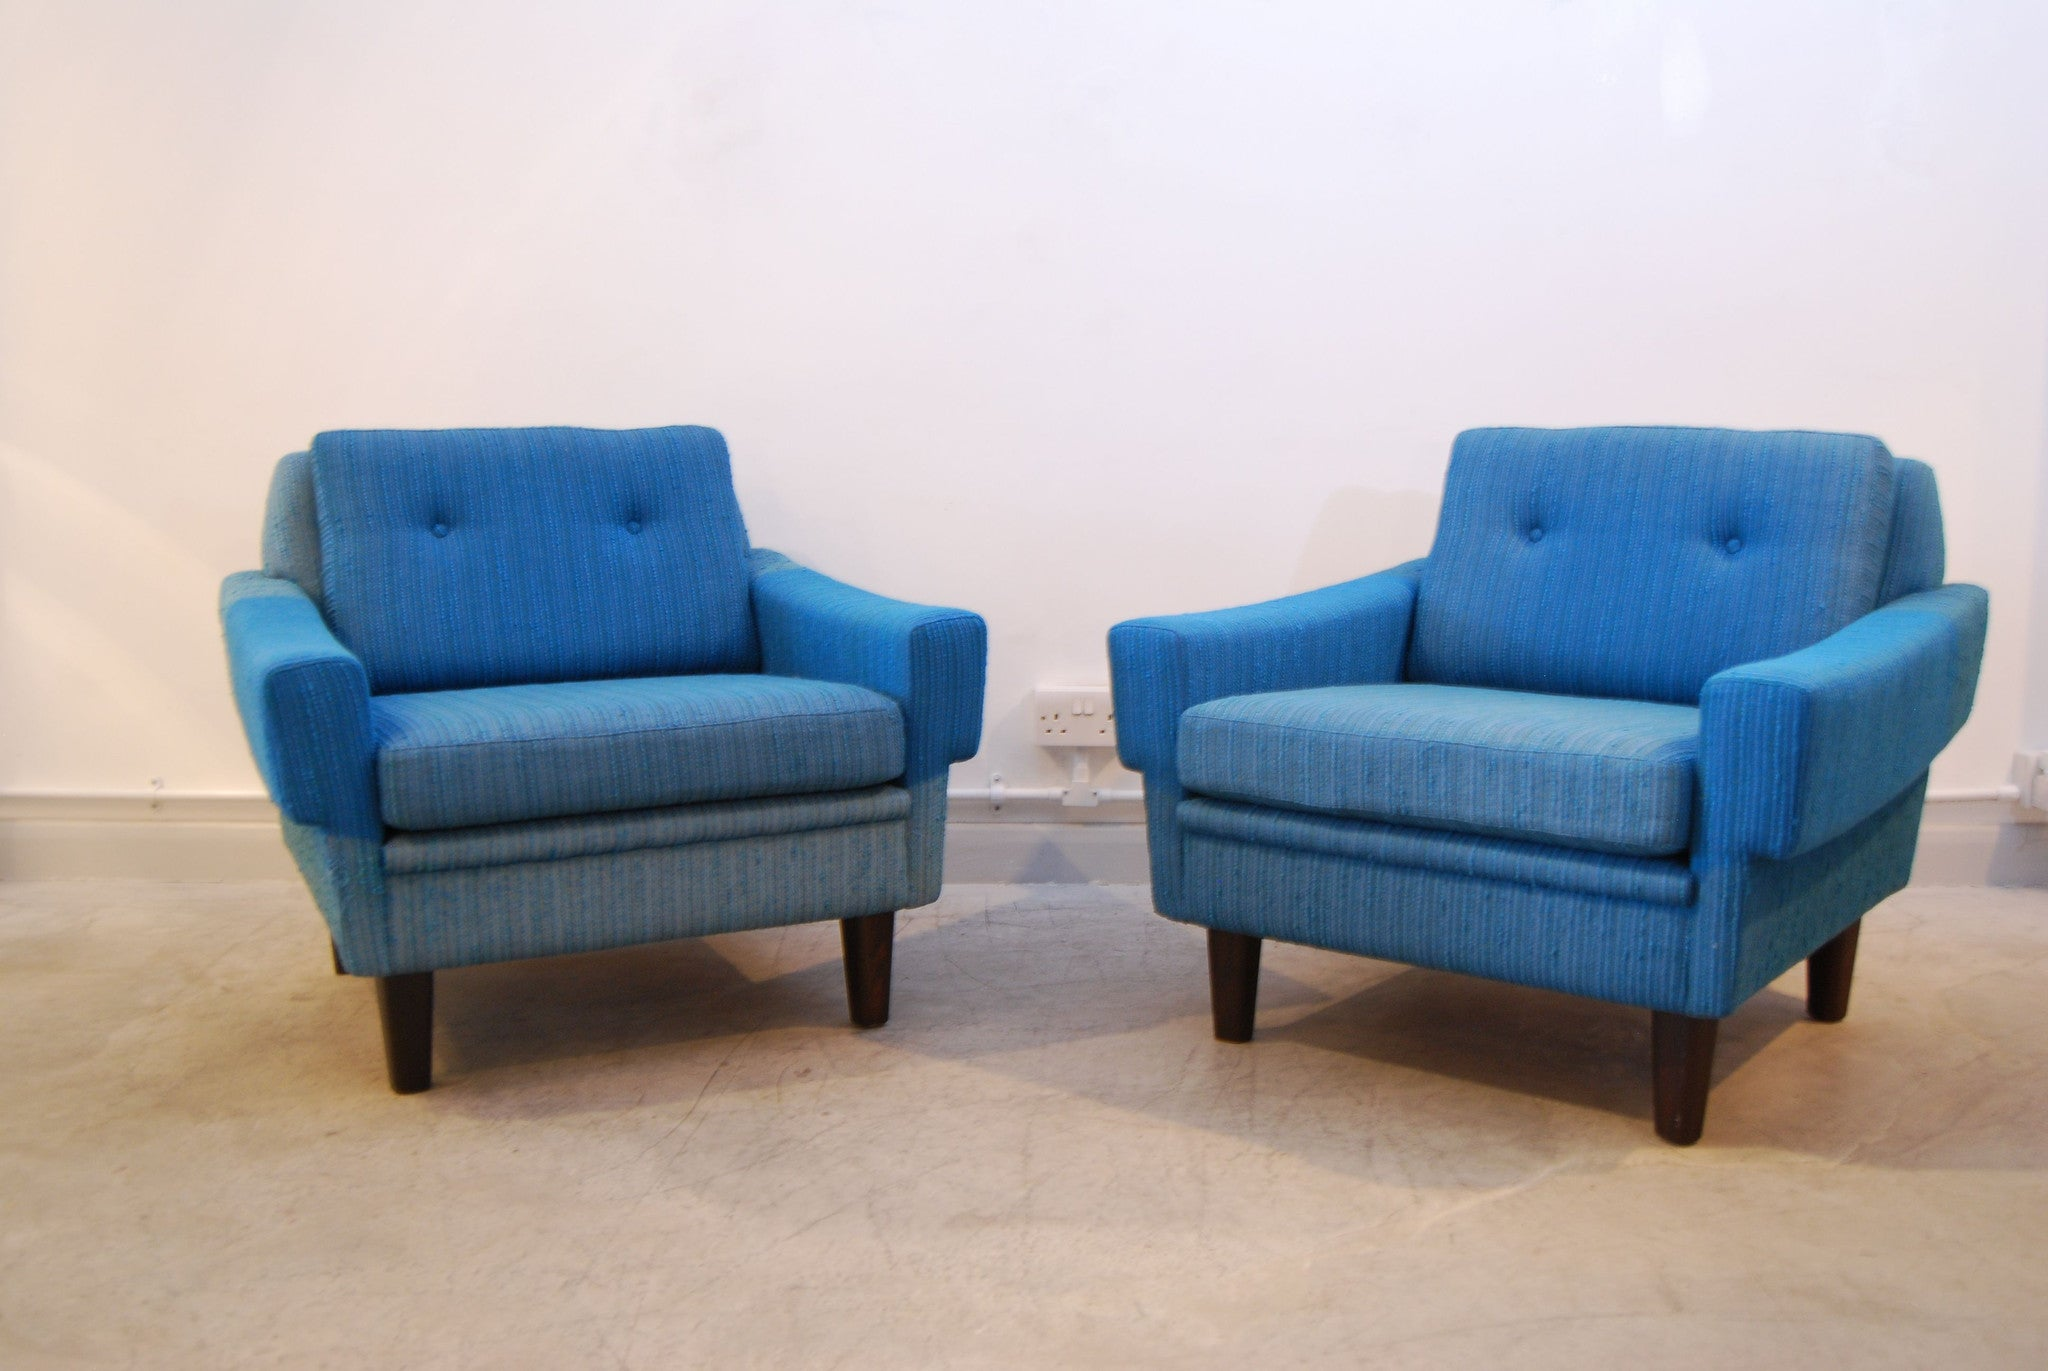 Pair of sea blue lounge chairs